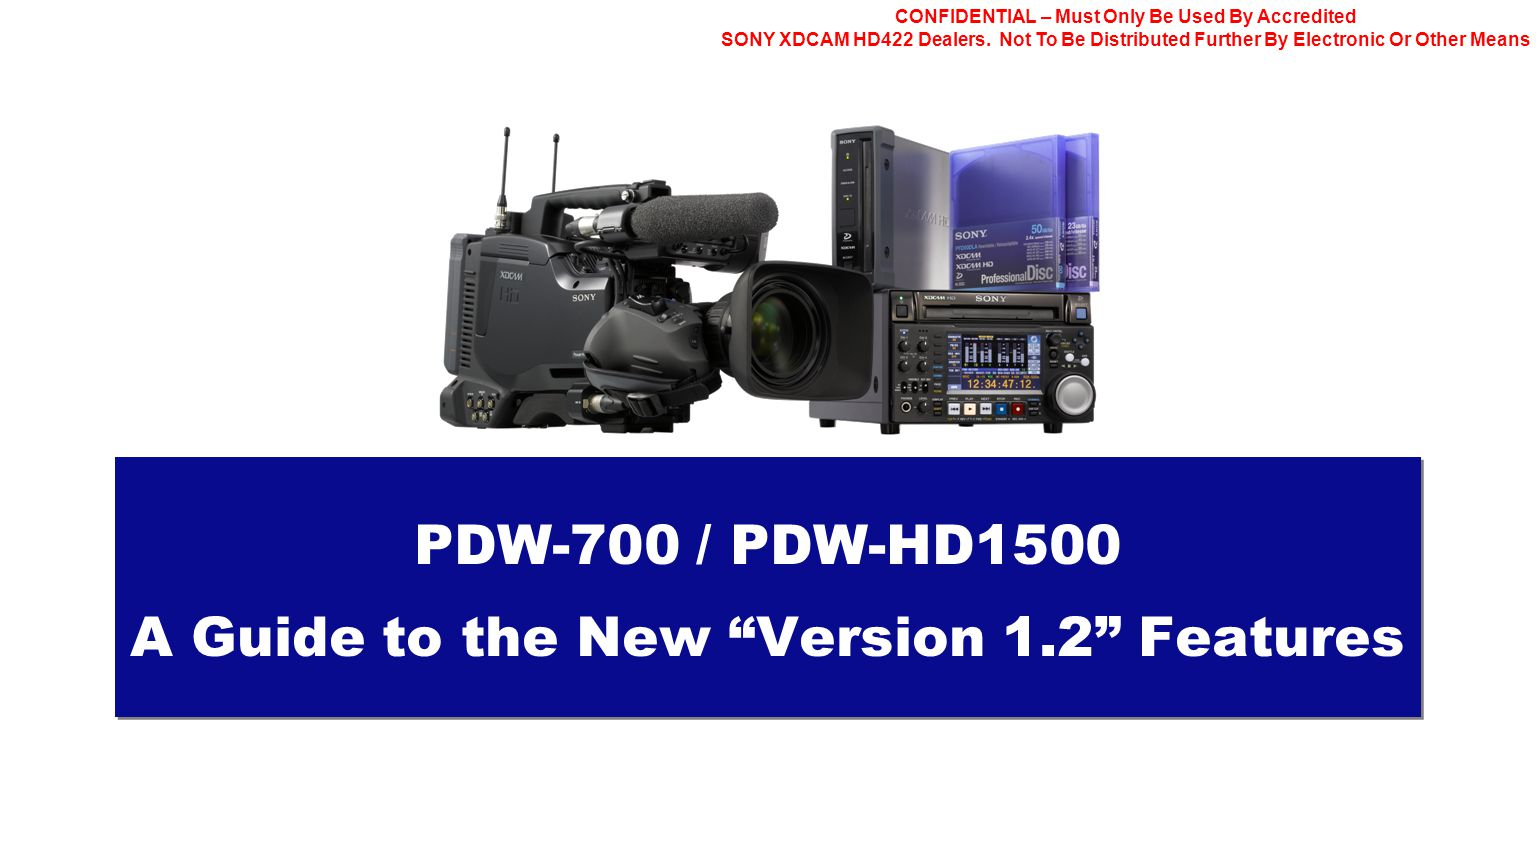 CONFIDENTIAL – Must Only Be Used By Accredited SONY XDCAM HD422 Dealers. Not To Be Distributed Further By Electronic Or Other Means PDW-700 / PDW-HD15